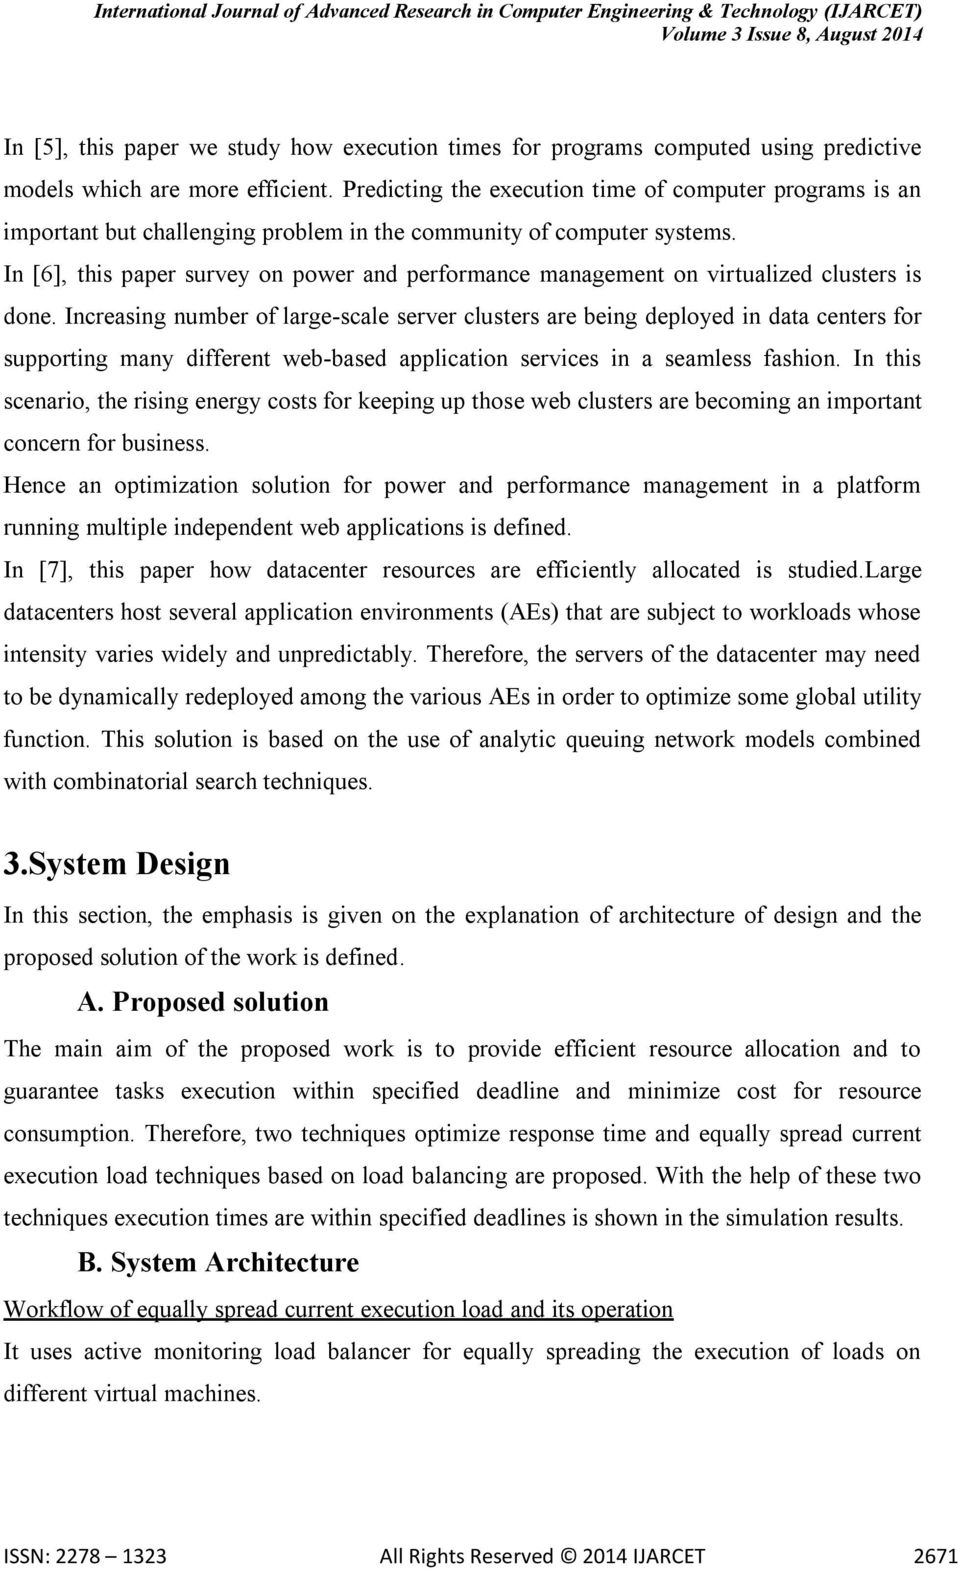 In [6], this paper survey on power and performance management on virtualized clusters is done.